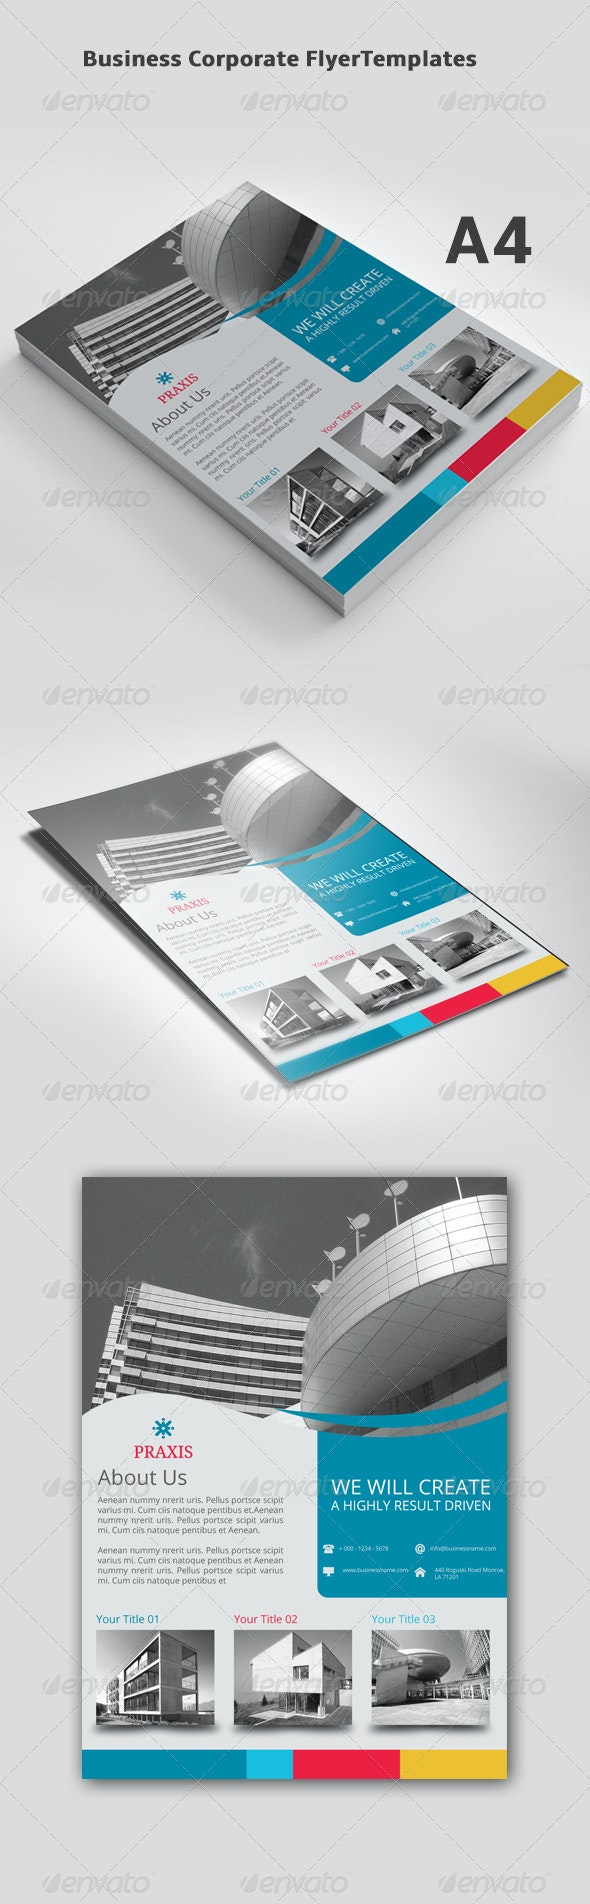 Business Corporate Flyer Templates  - Corporate Flyers